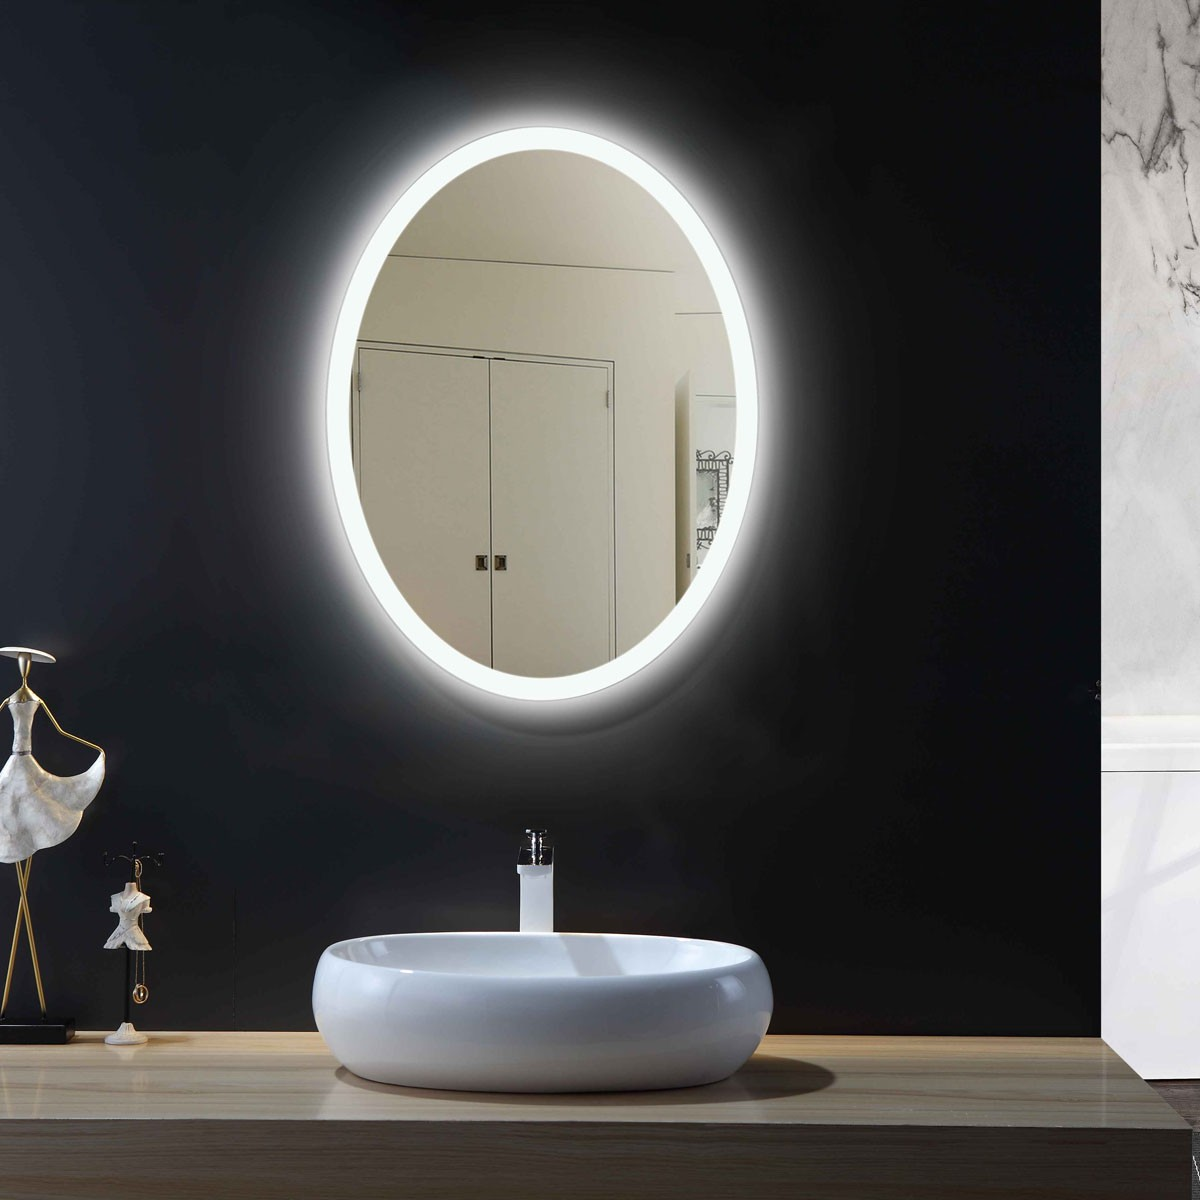 24 x 32 In Vertical Oval LED Bathroom Mirror with Infrared Sensor (DK-OD-CL054-G)